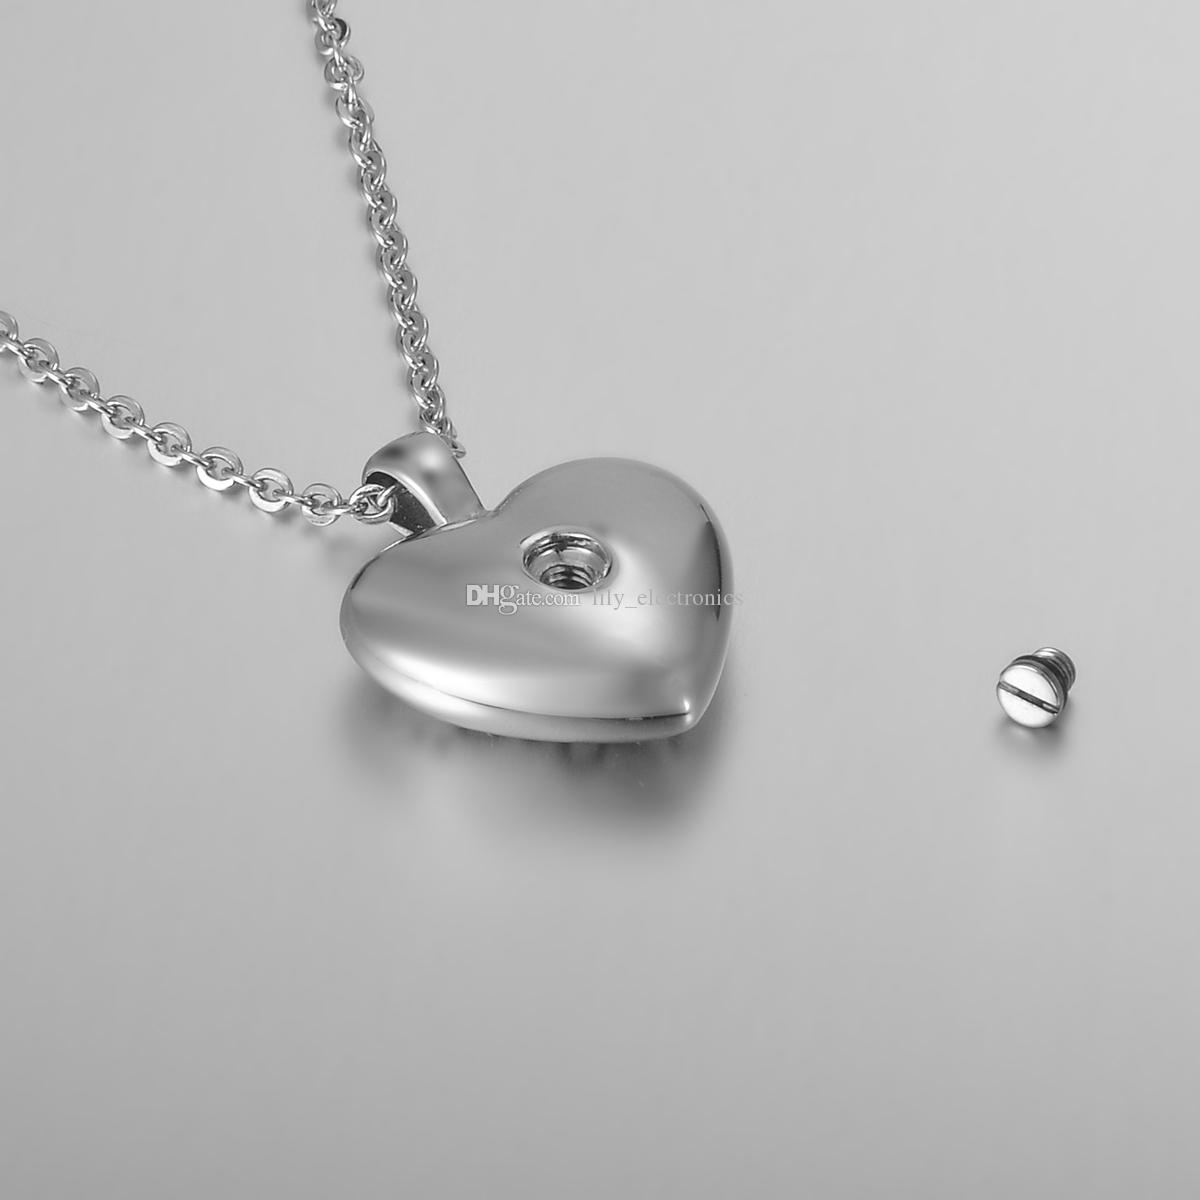 Lily Stainless Steel intage Filigree Heart Cremation Jewelry Ashes Pendant Keepsake Memorial Urn Necklace with Gift Bag And Chain